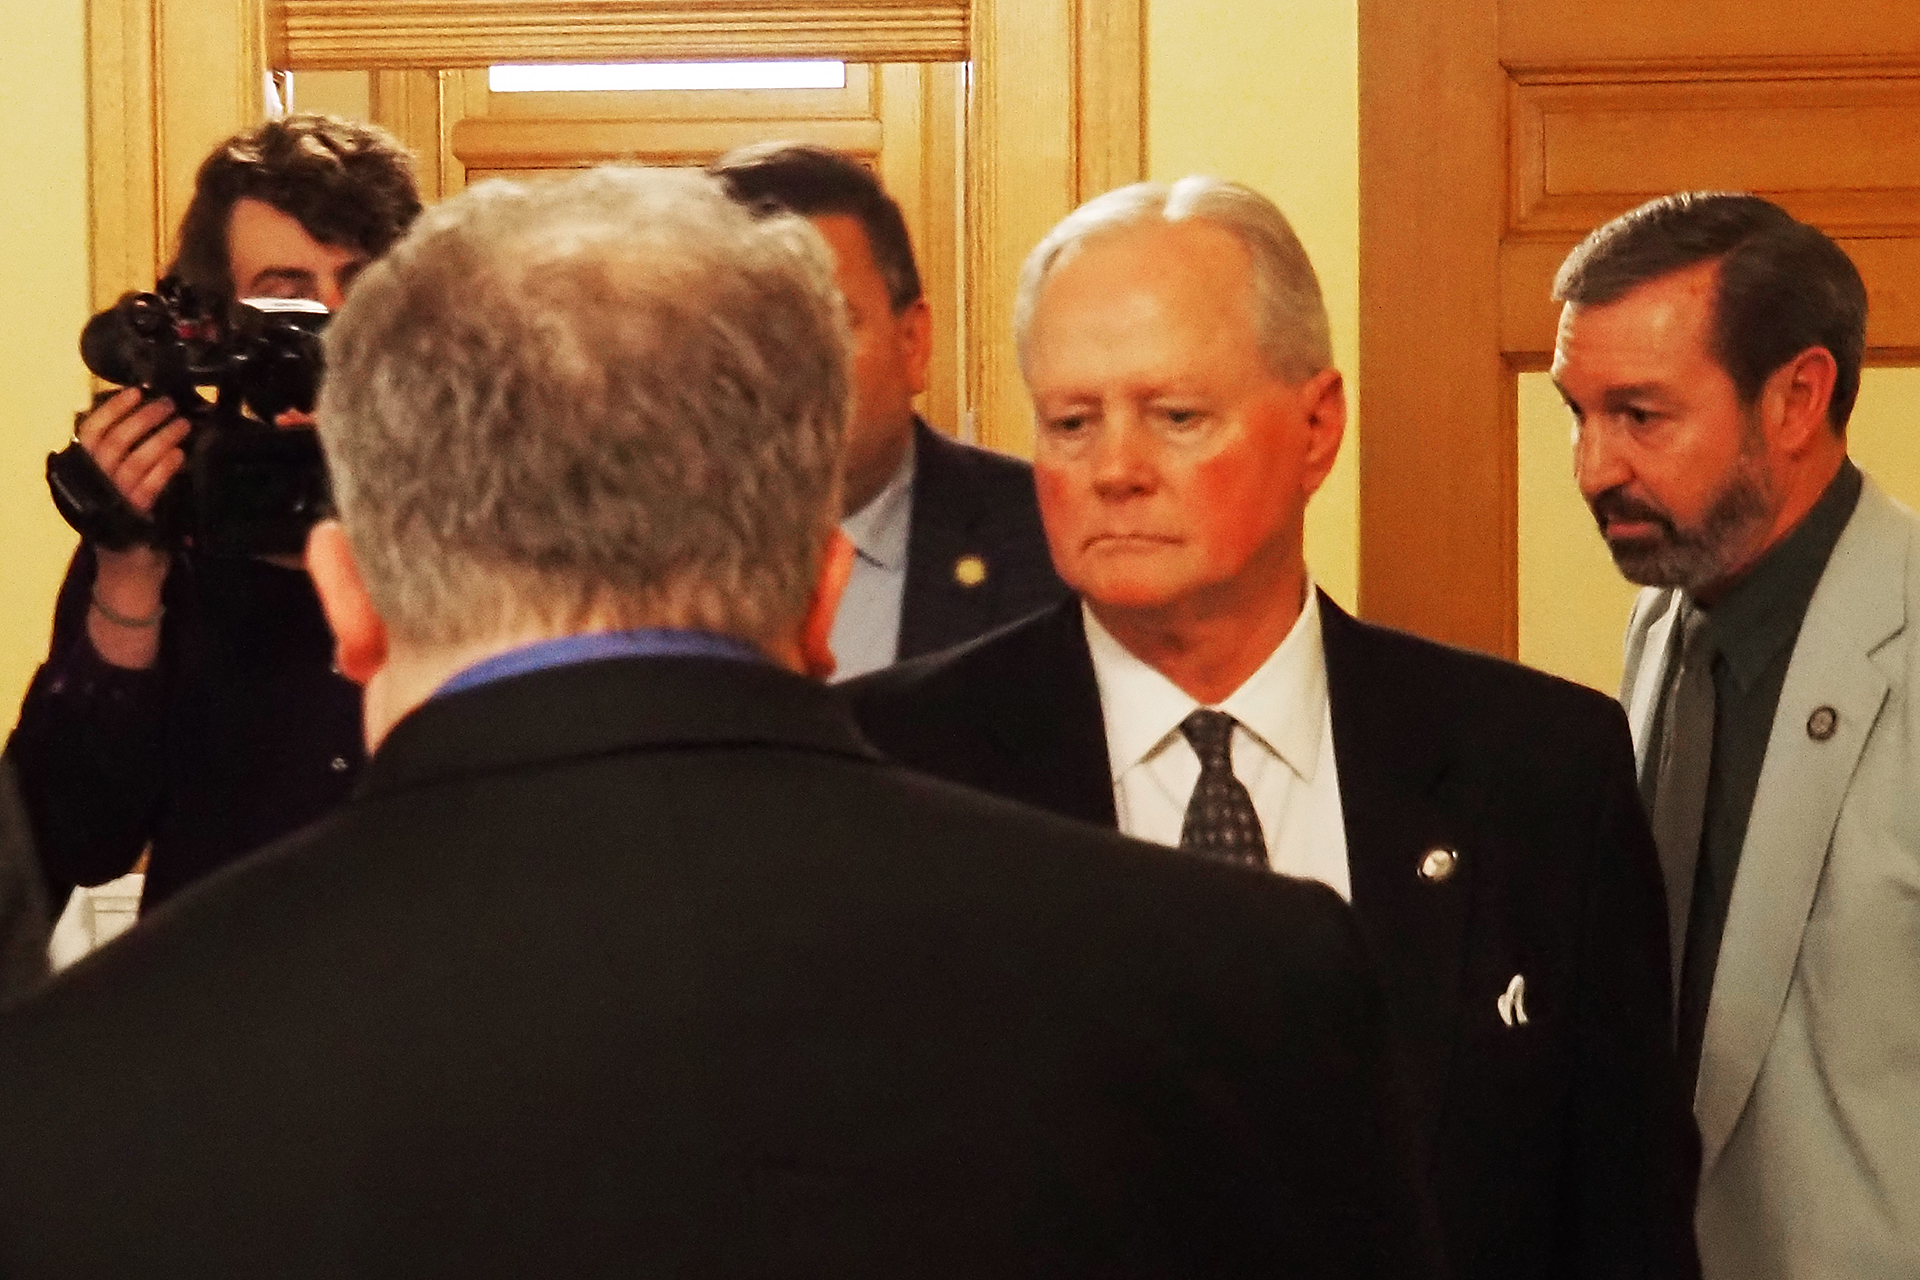 With the Senate drunk on its own power, all of Kansas might need a recovery support group